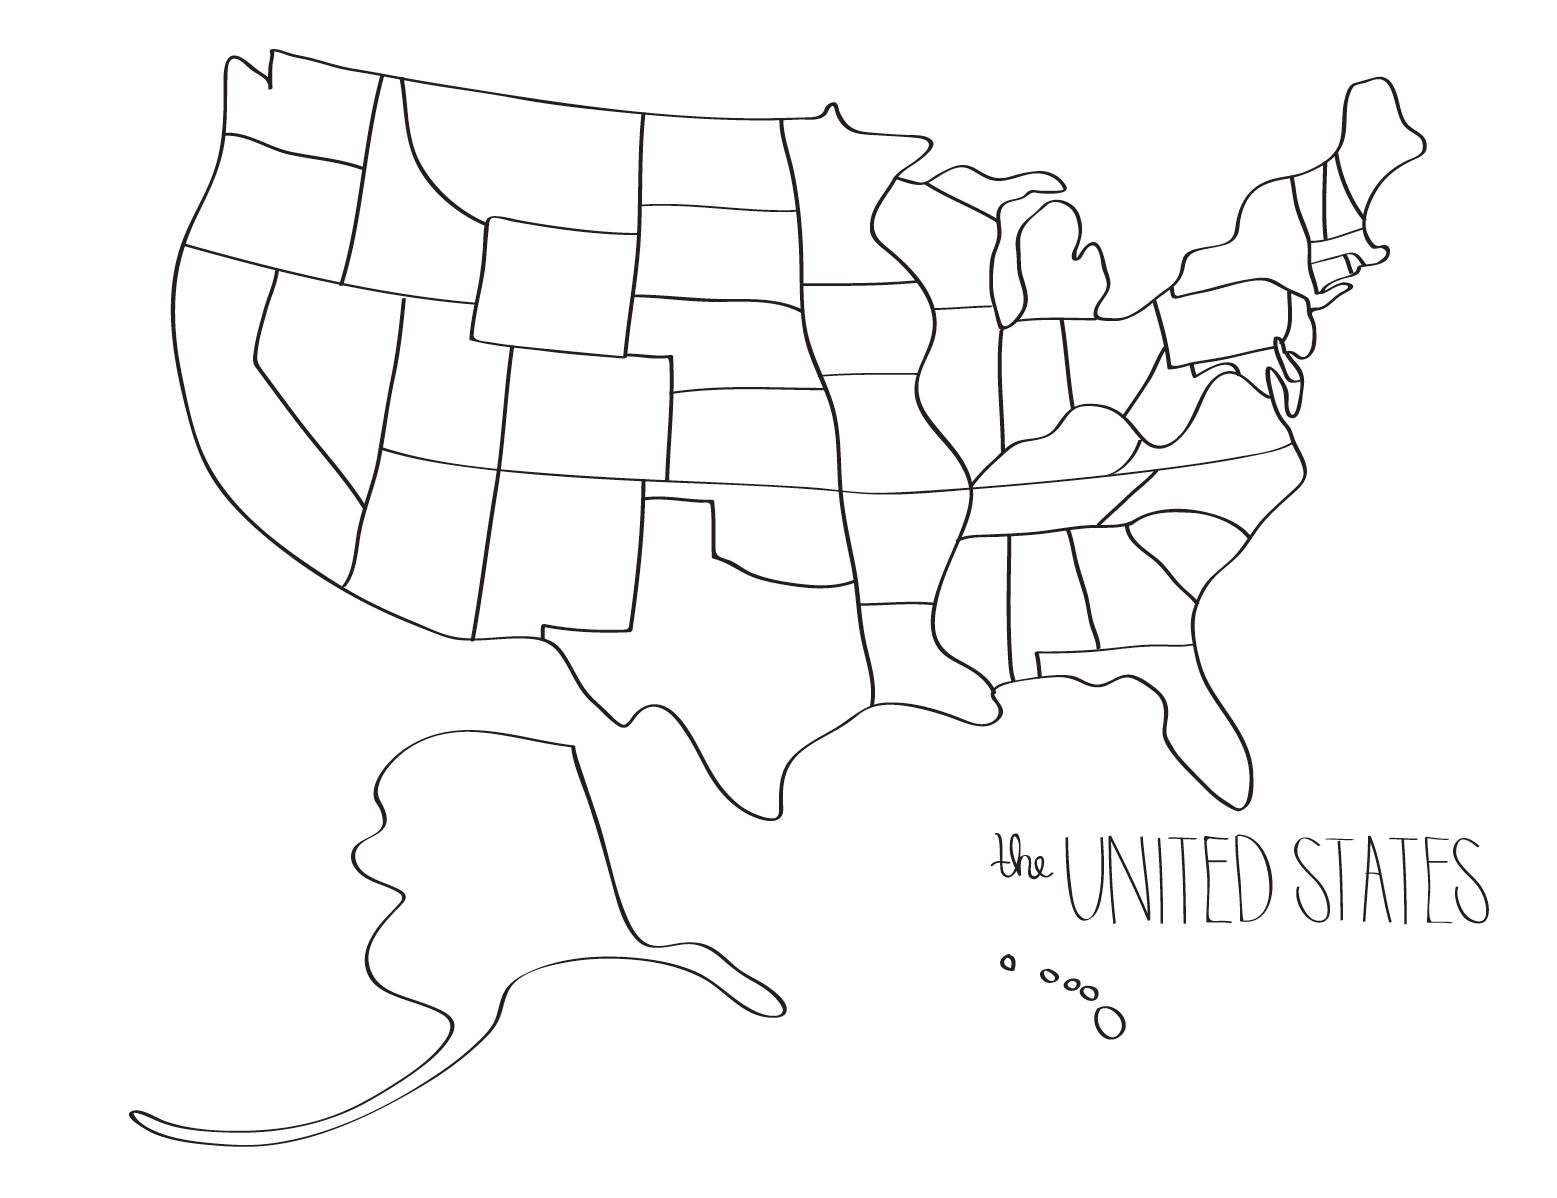 united states map drawing Learn to draw the UNITED STATES blob map style | Etsy in 2020